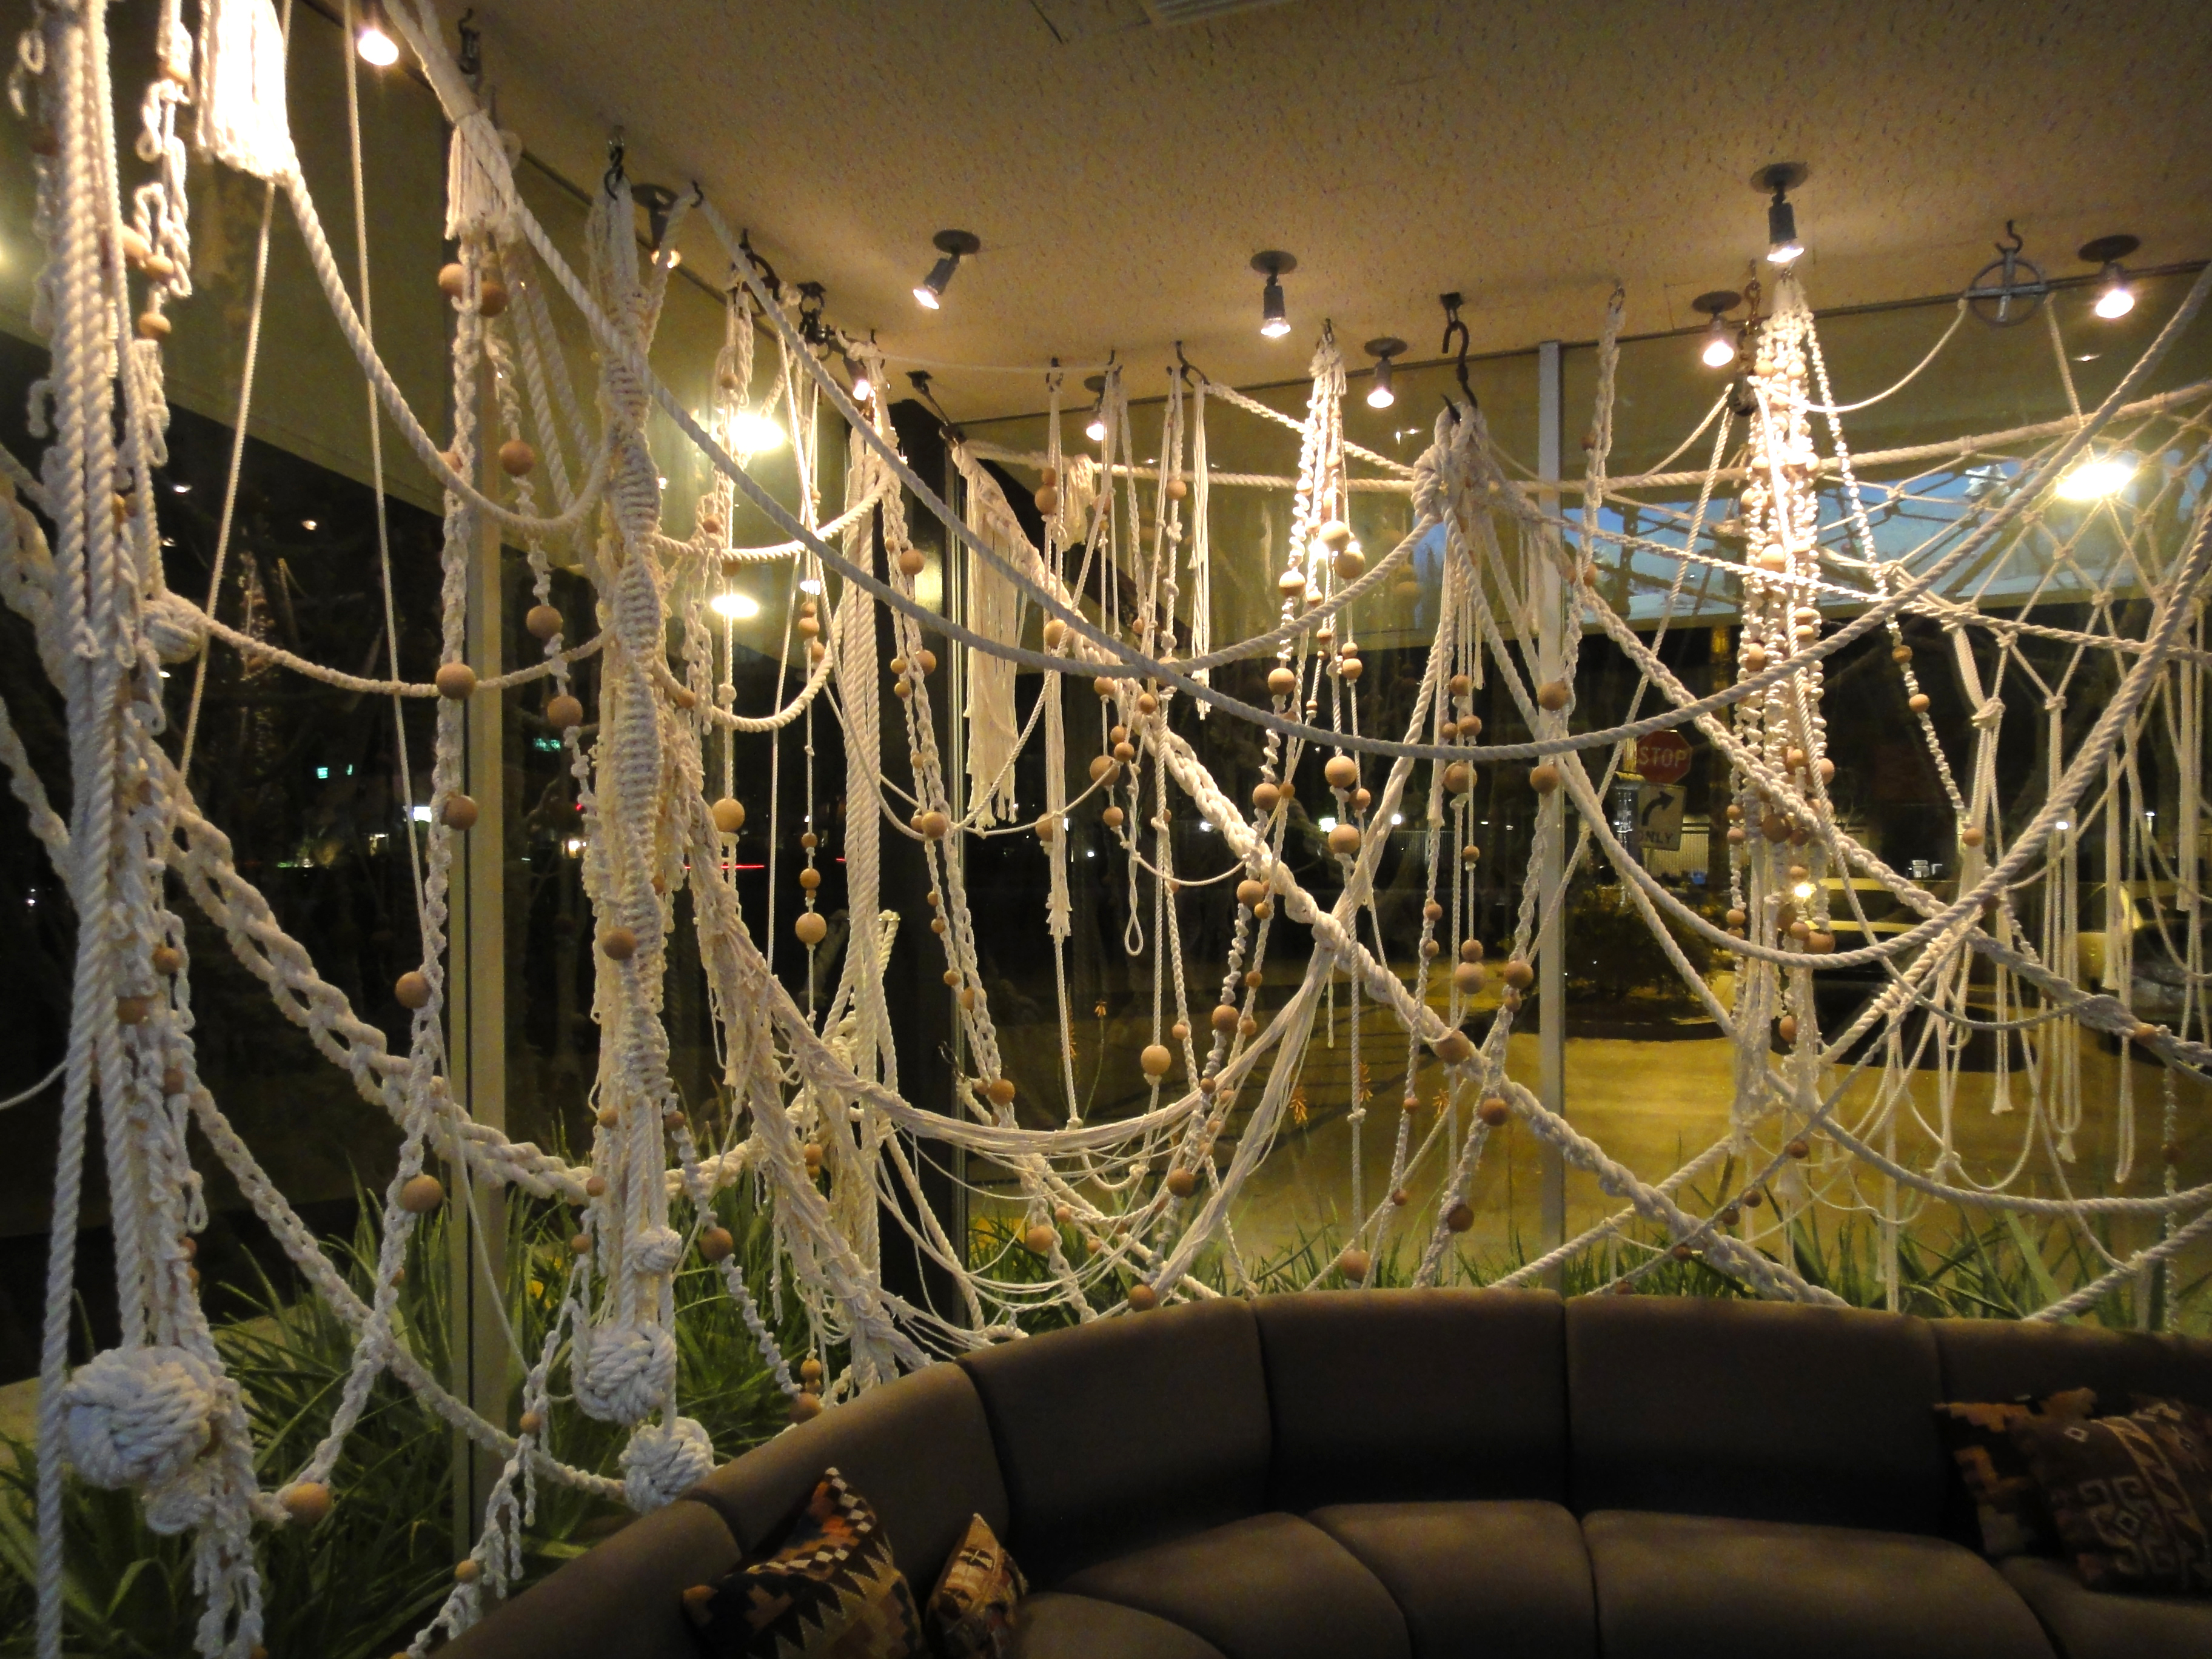 Knotted Macramé rope curtain<br>1.5 miles of cotton rope, wooden balls<br>Lobby installation 2009